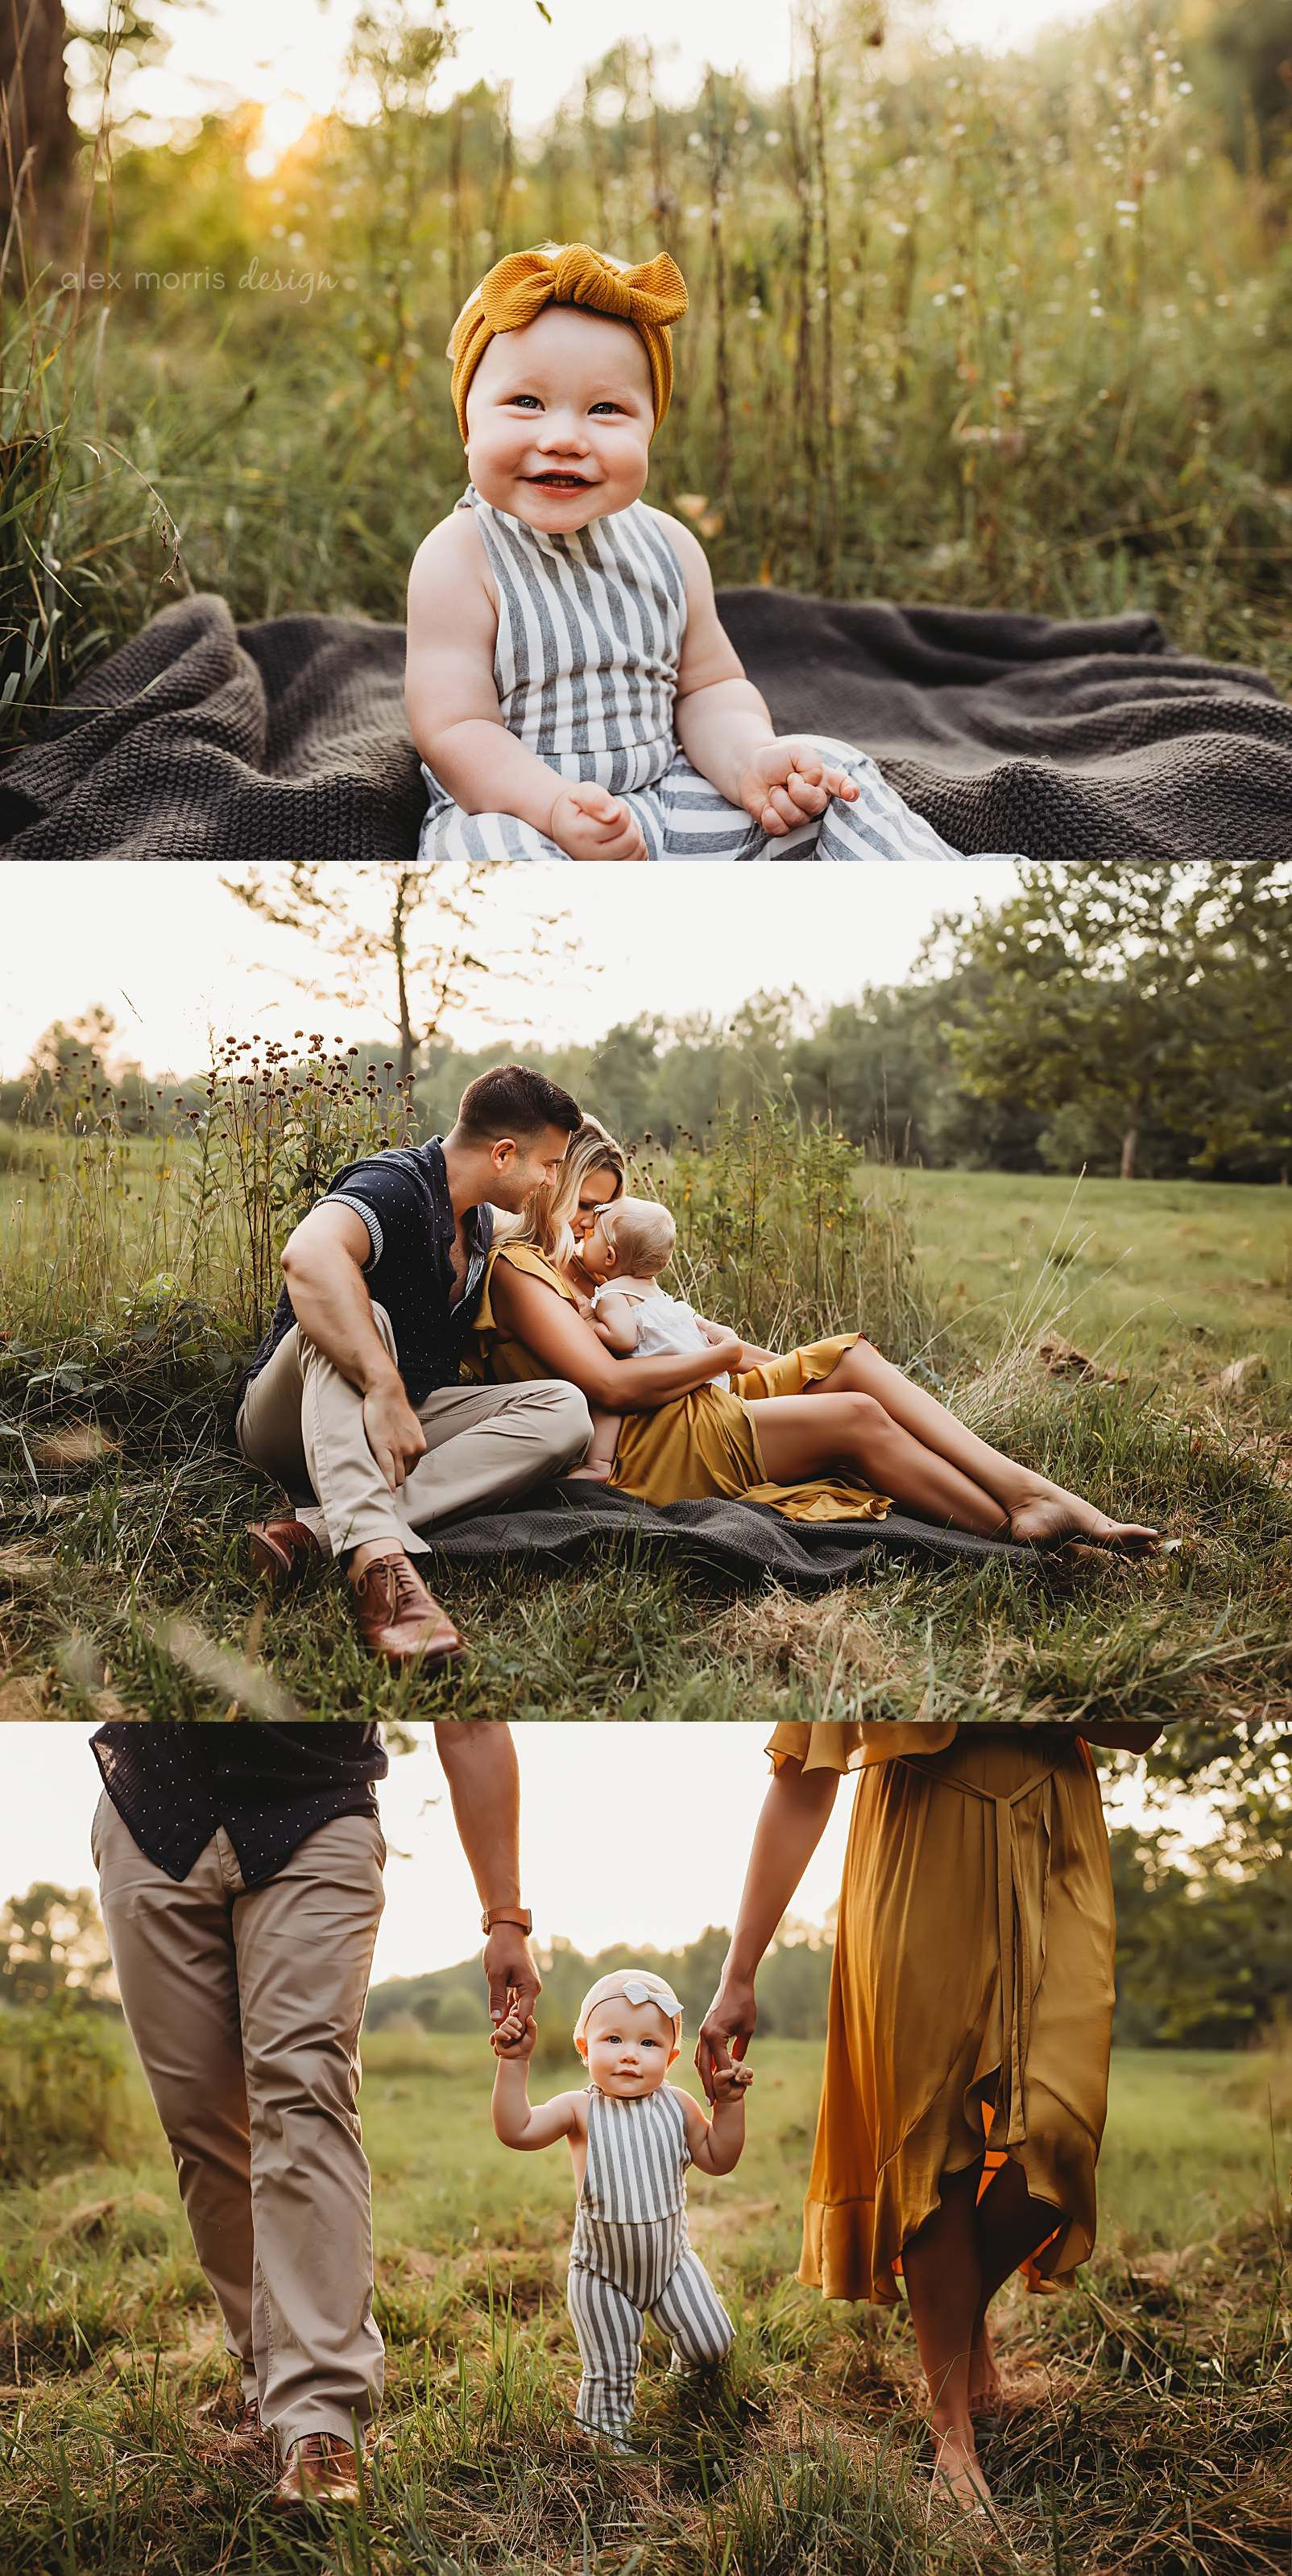 Indianapolis Family and newborn Photographer, baby, portraits, alex morris design, outfits, portraits, photography, family photos, indiana, lifestyle newborn photography outfits, pose, babies, pictures, one year old baby , yellow #familyphotooutfits